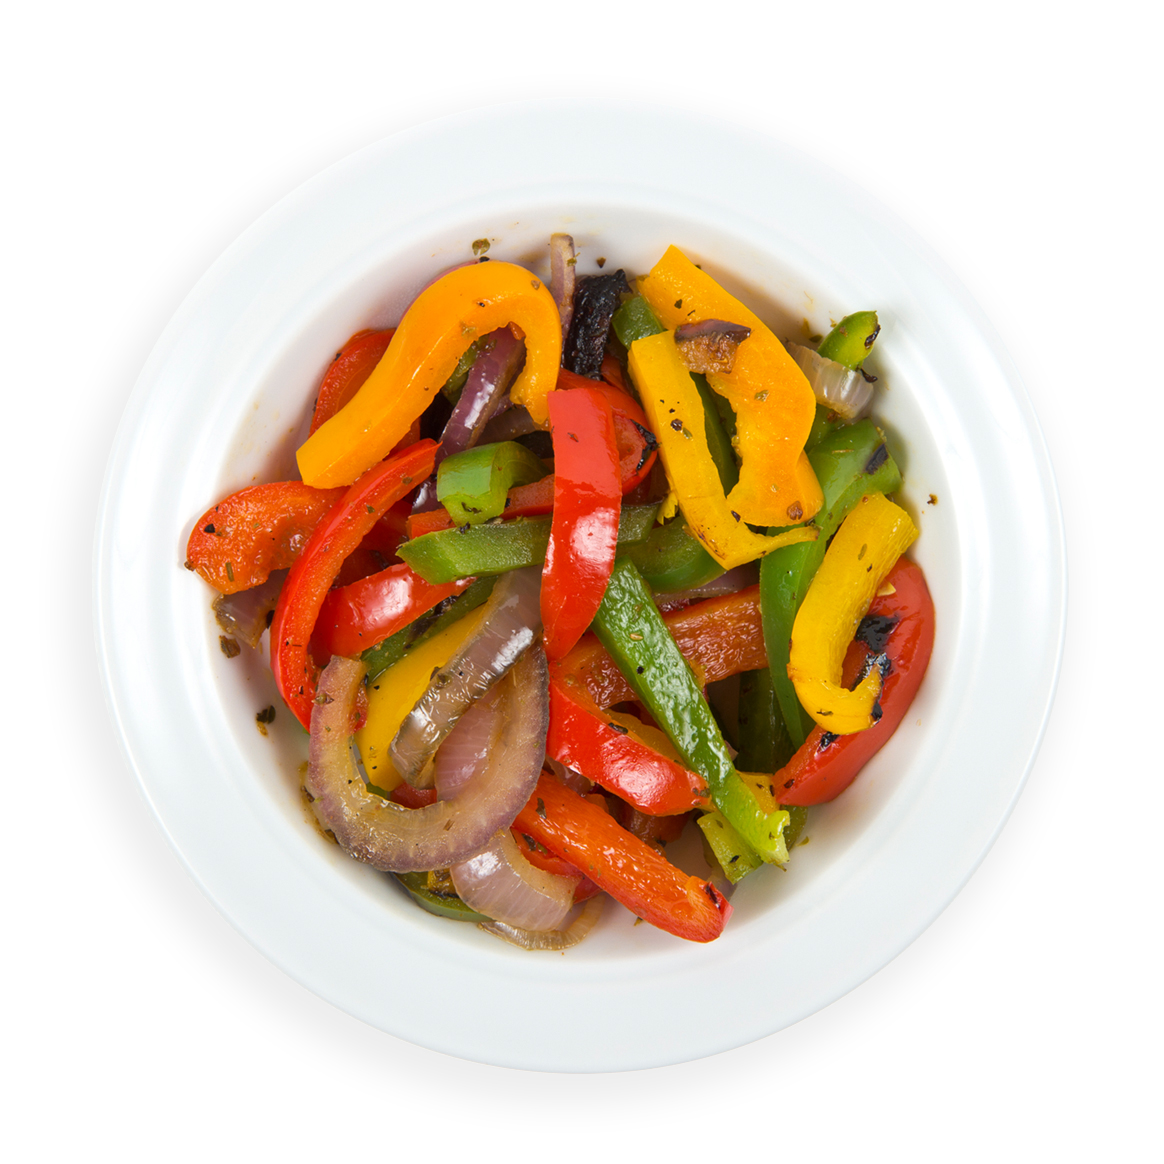 Flame Grilled Veggies